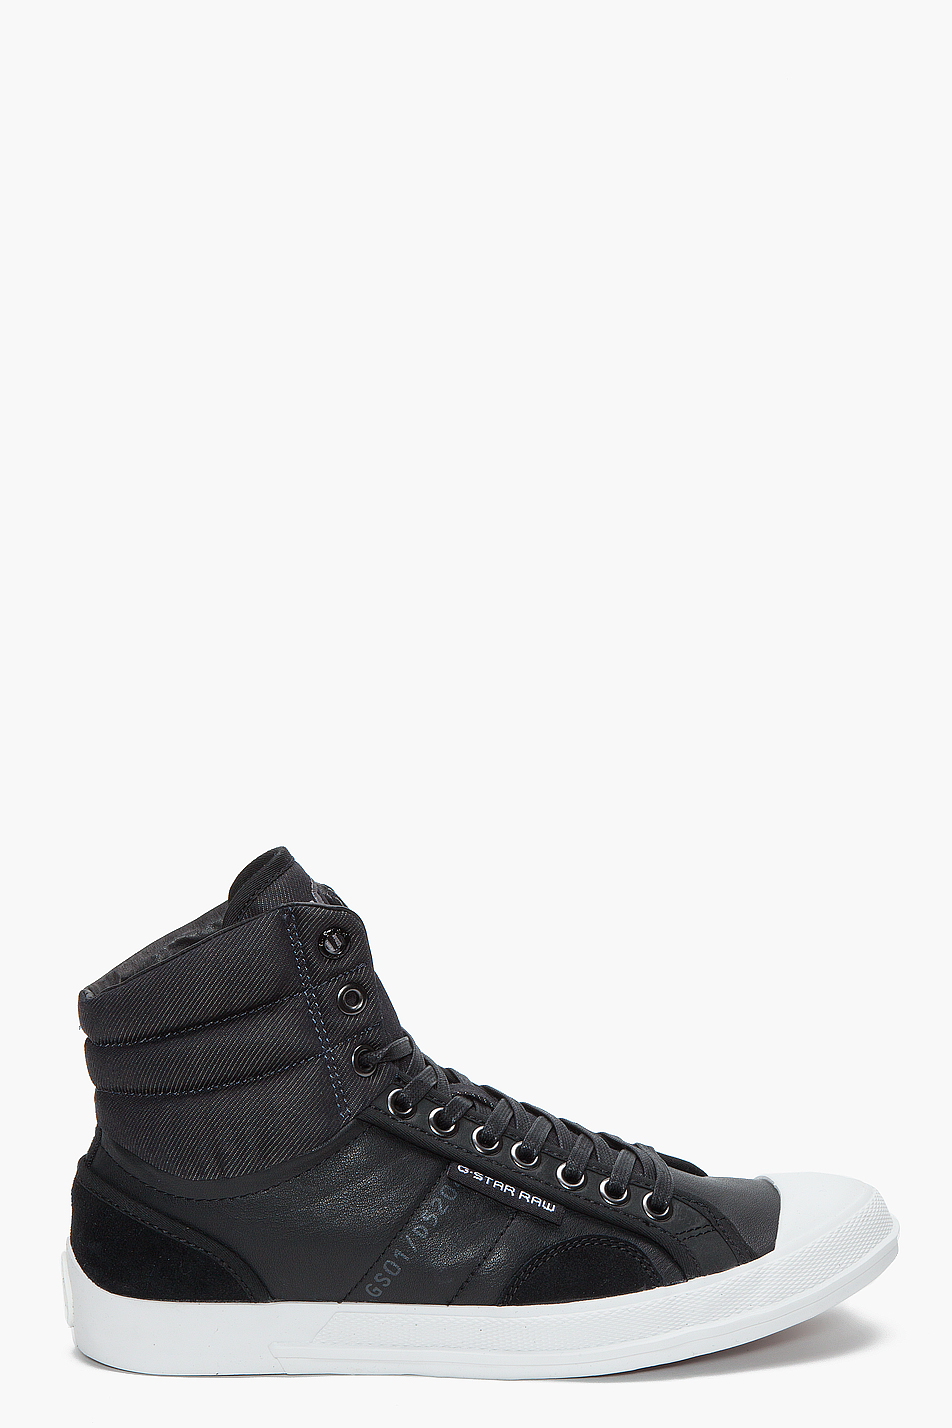 g star raw alibi welter hi leather sneakers in black for men lyst. Black Bedroom Furniture Sets. Home Design Ideas